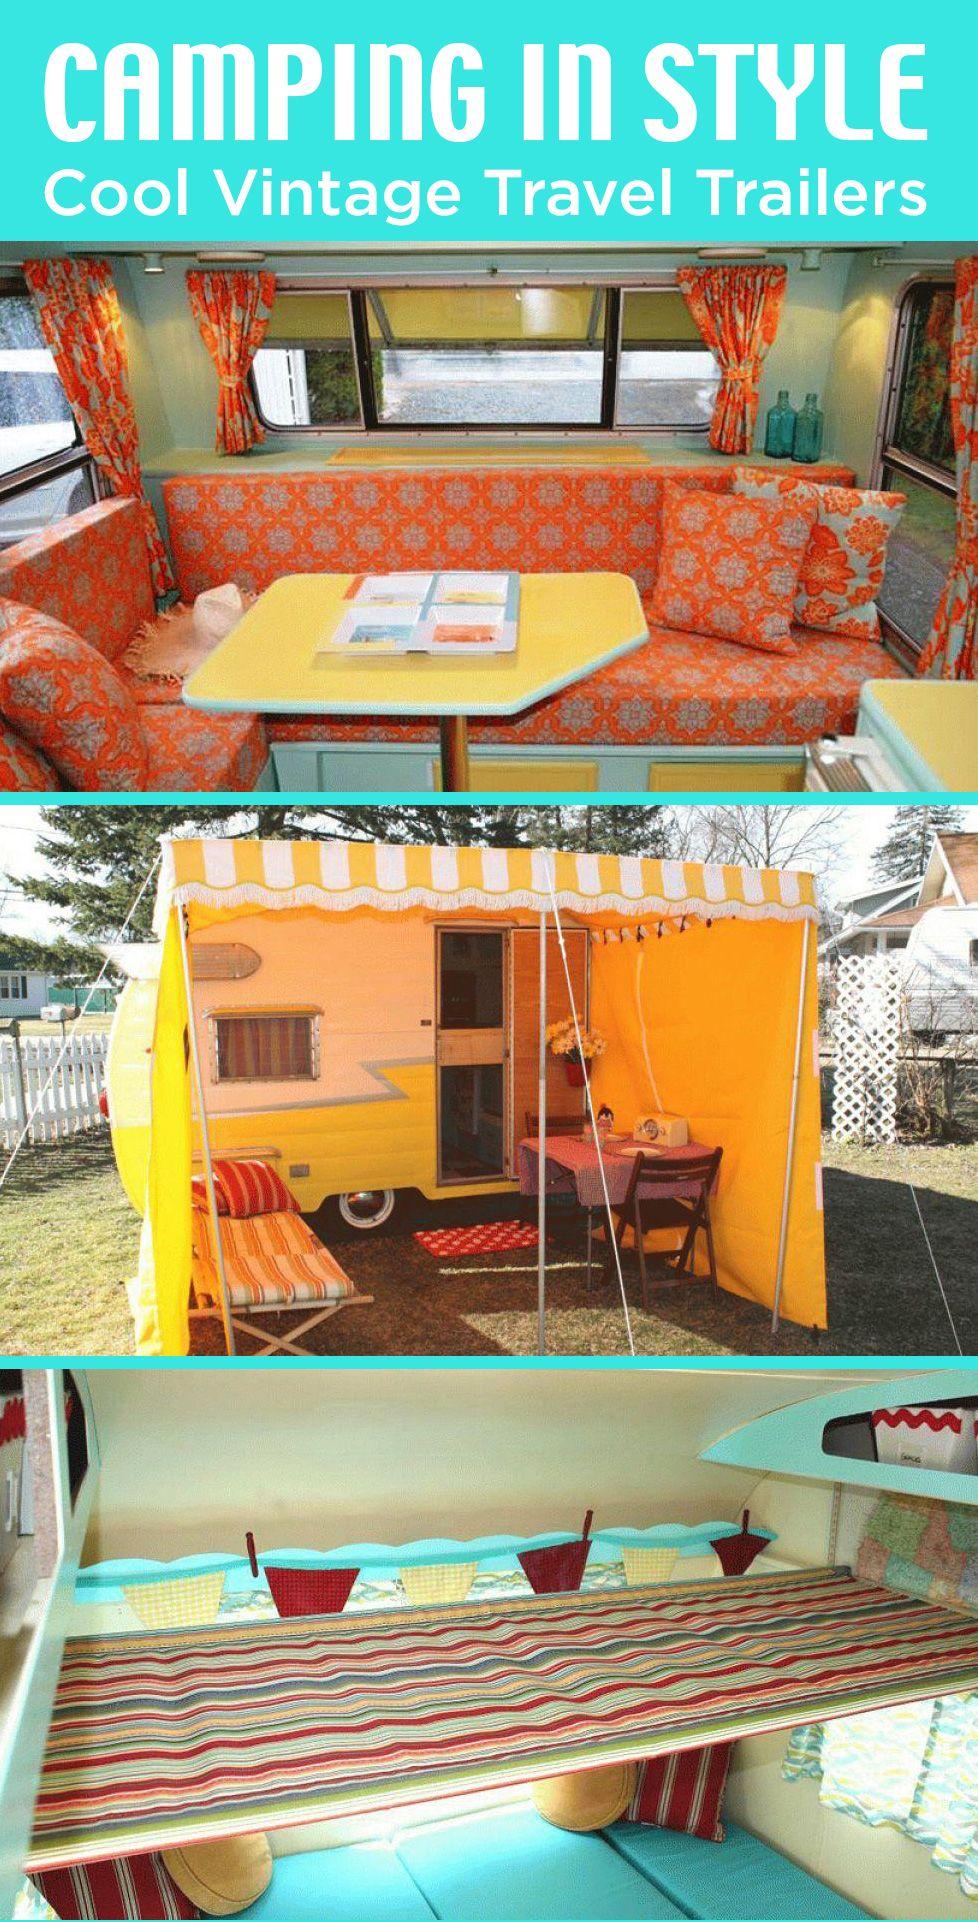 CAMPER DECORATING IDEAS: Enjoy camping in style—with a funky, vintage travel trailer, complete with retro-style kitchenettes, bathrooms and sleeping areas.